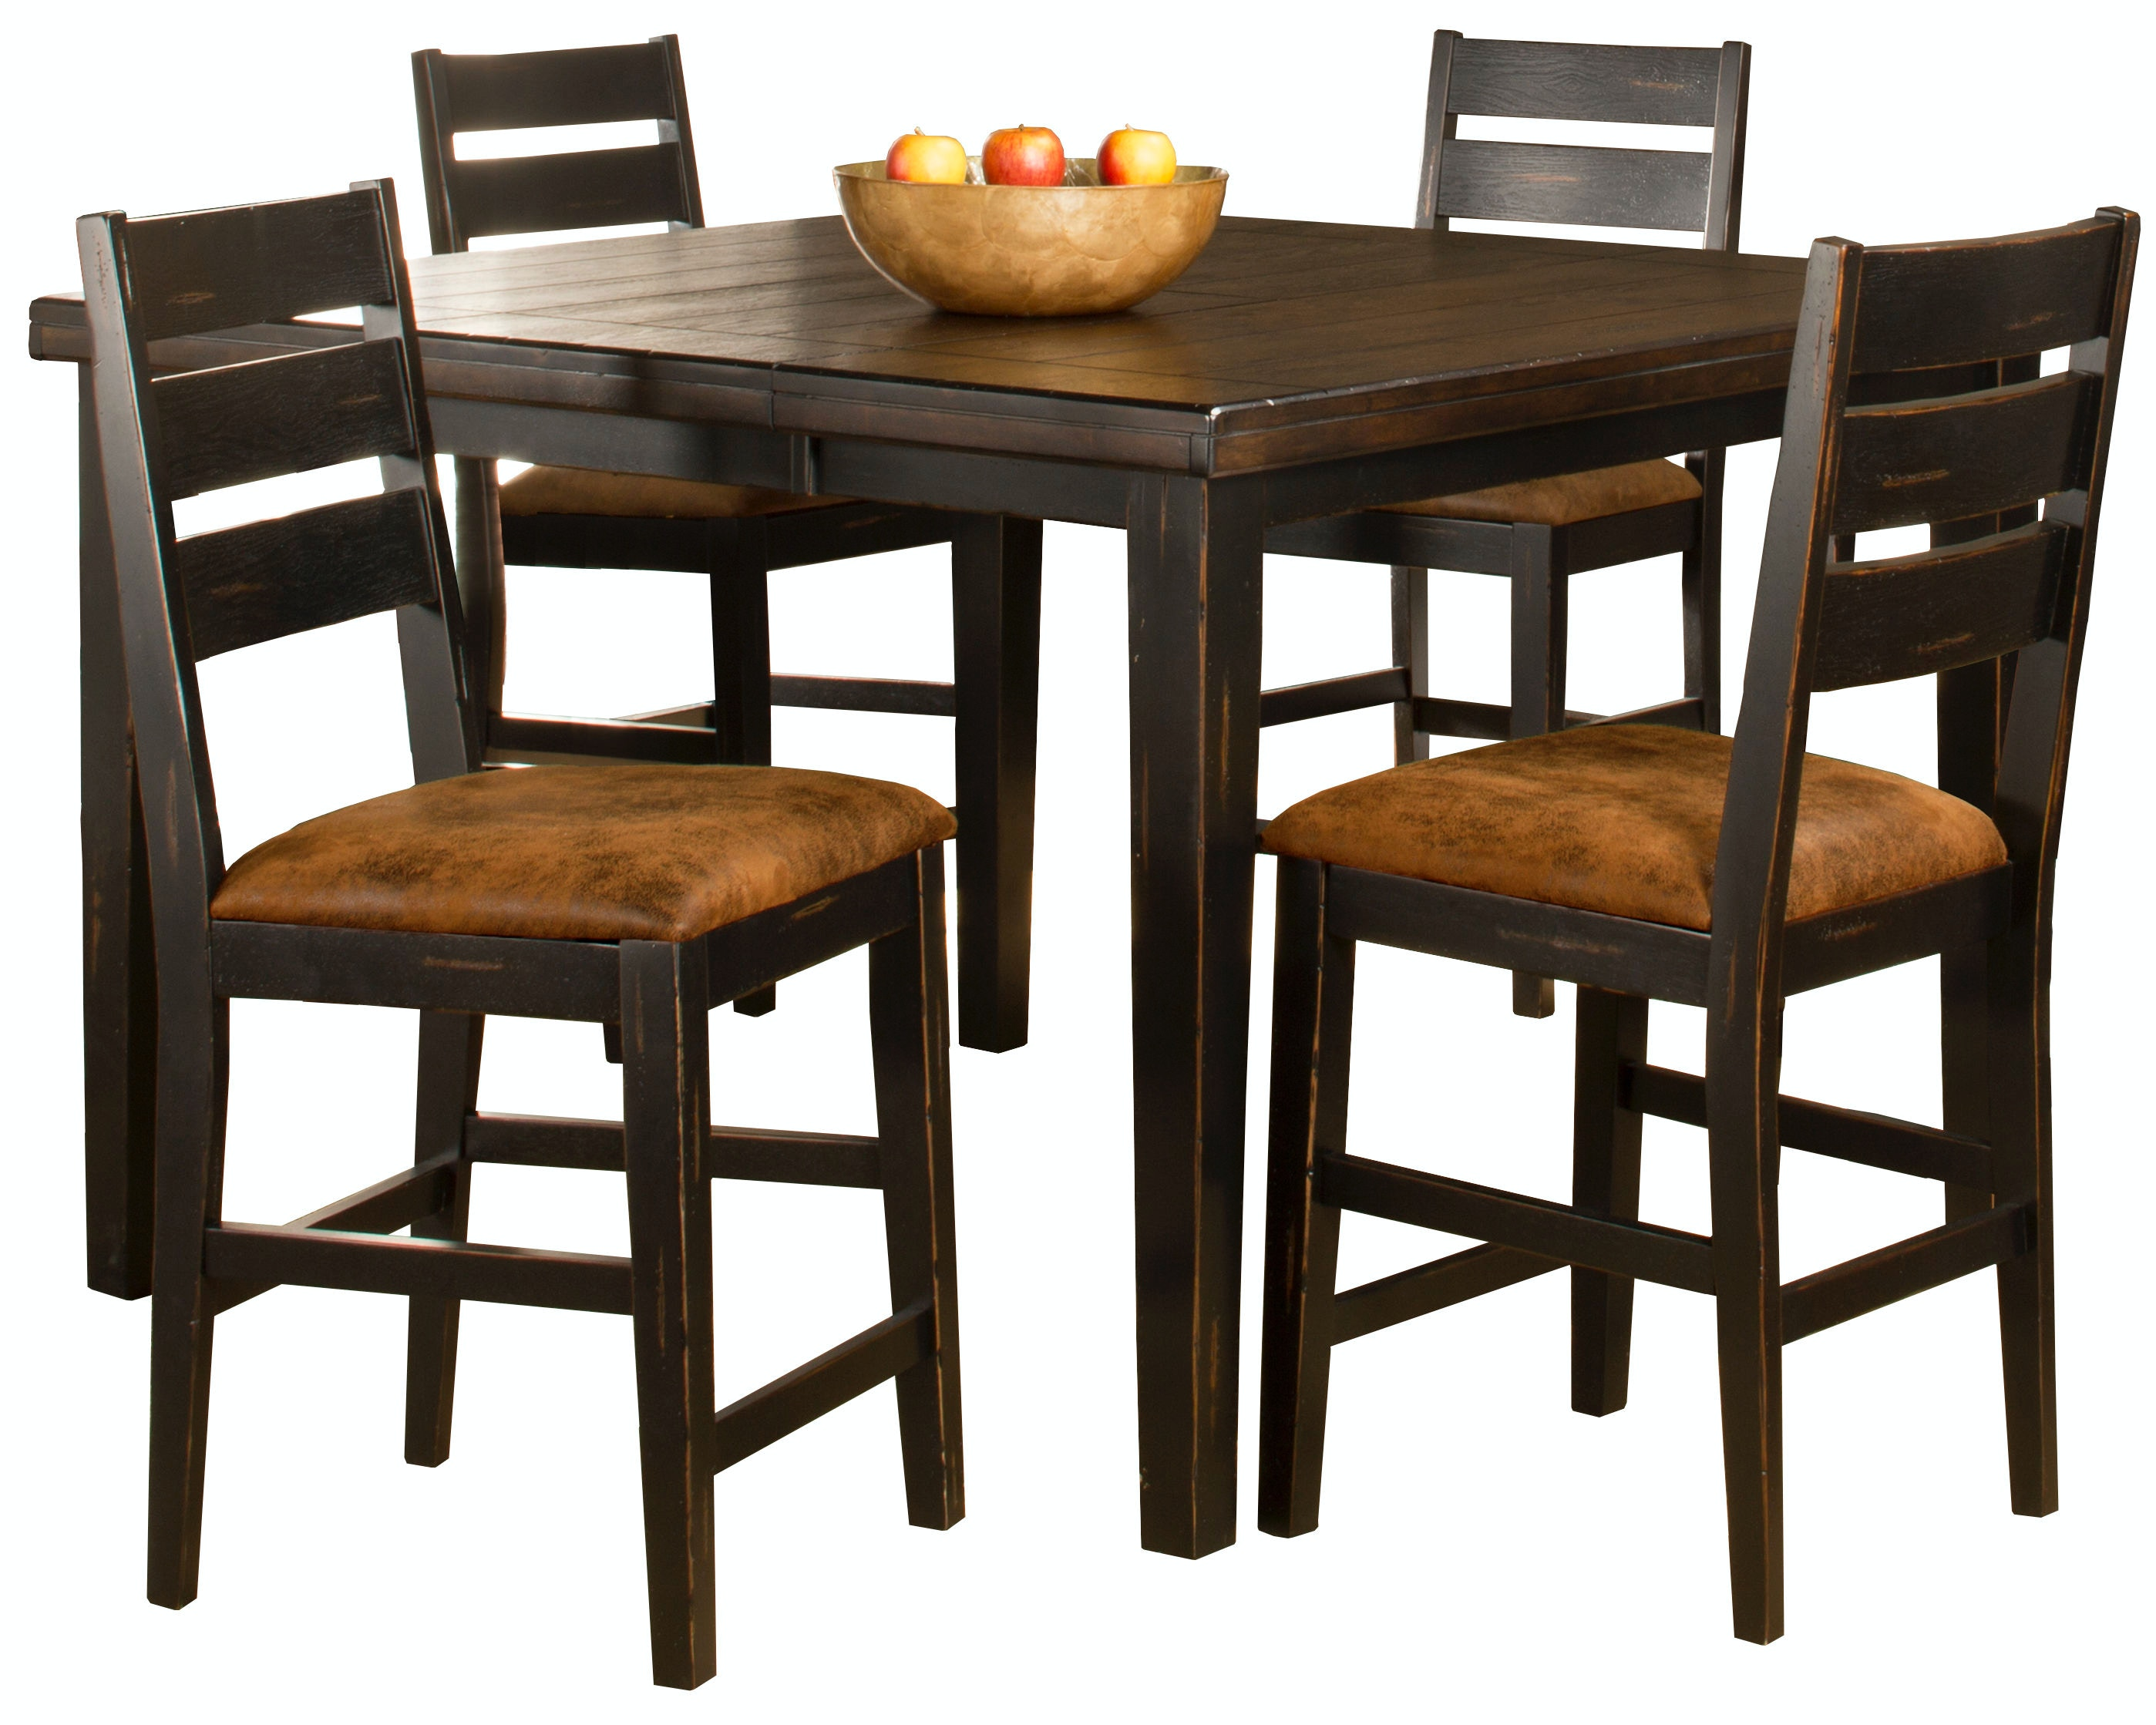 Hillsdale Furniture Bar And Game Room Killarney 5 Piece Counter Height  Dining With Ladder Back Stools 5381CTBSL5 At Alpena Furniture